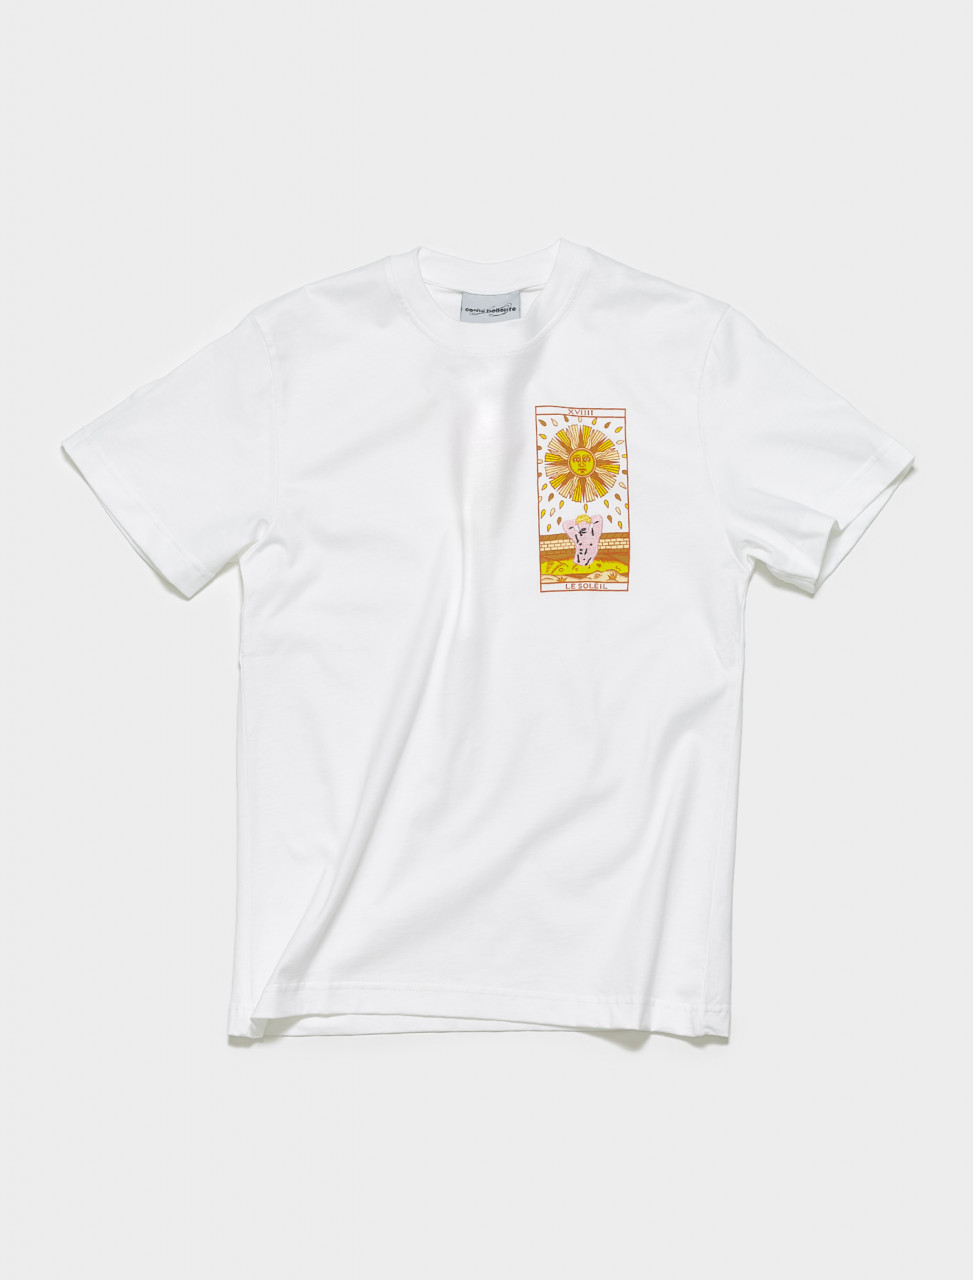 SS21TS04 CARNE BOLLENTE SUNPORN T SHIRT IN WHITE